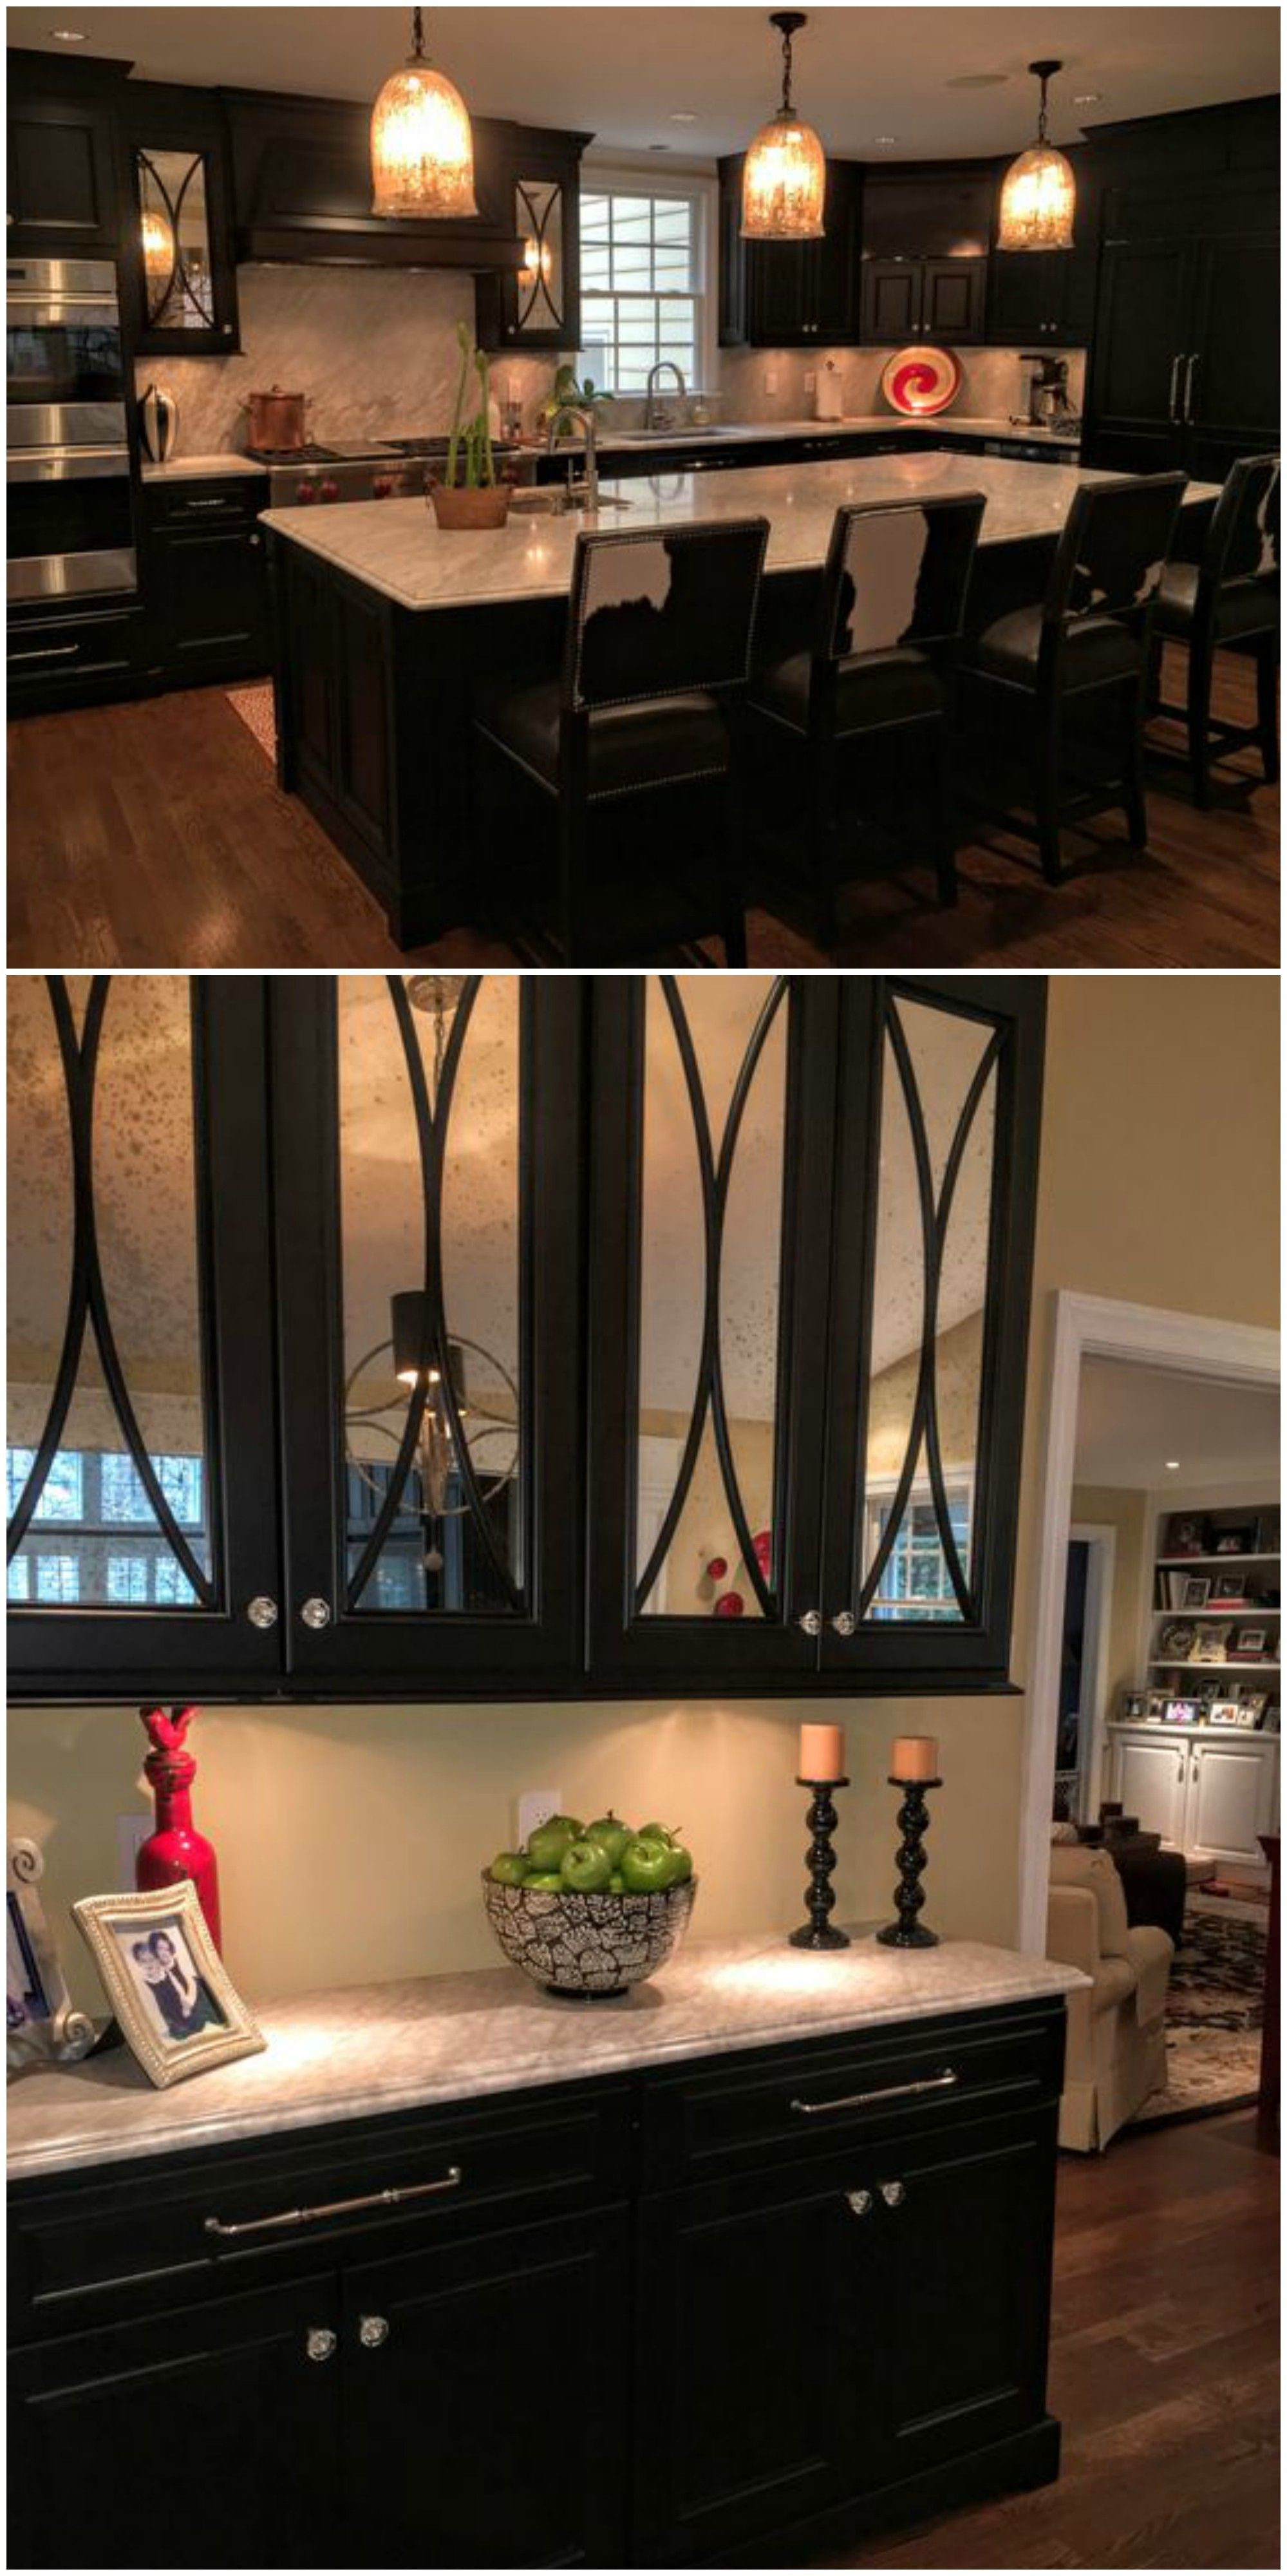 Glass Front Cabinet Doors Awesome Dark Painted Kitchen Mercury Glass Fronted Doors with